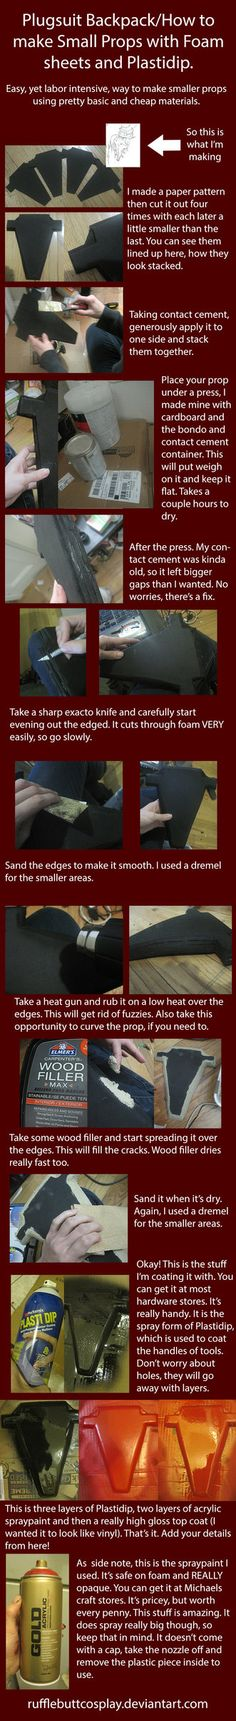 How to make Props with Plastidip and Foam Sheets by *RuffleButtCosplay on deviantART